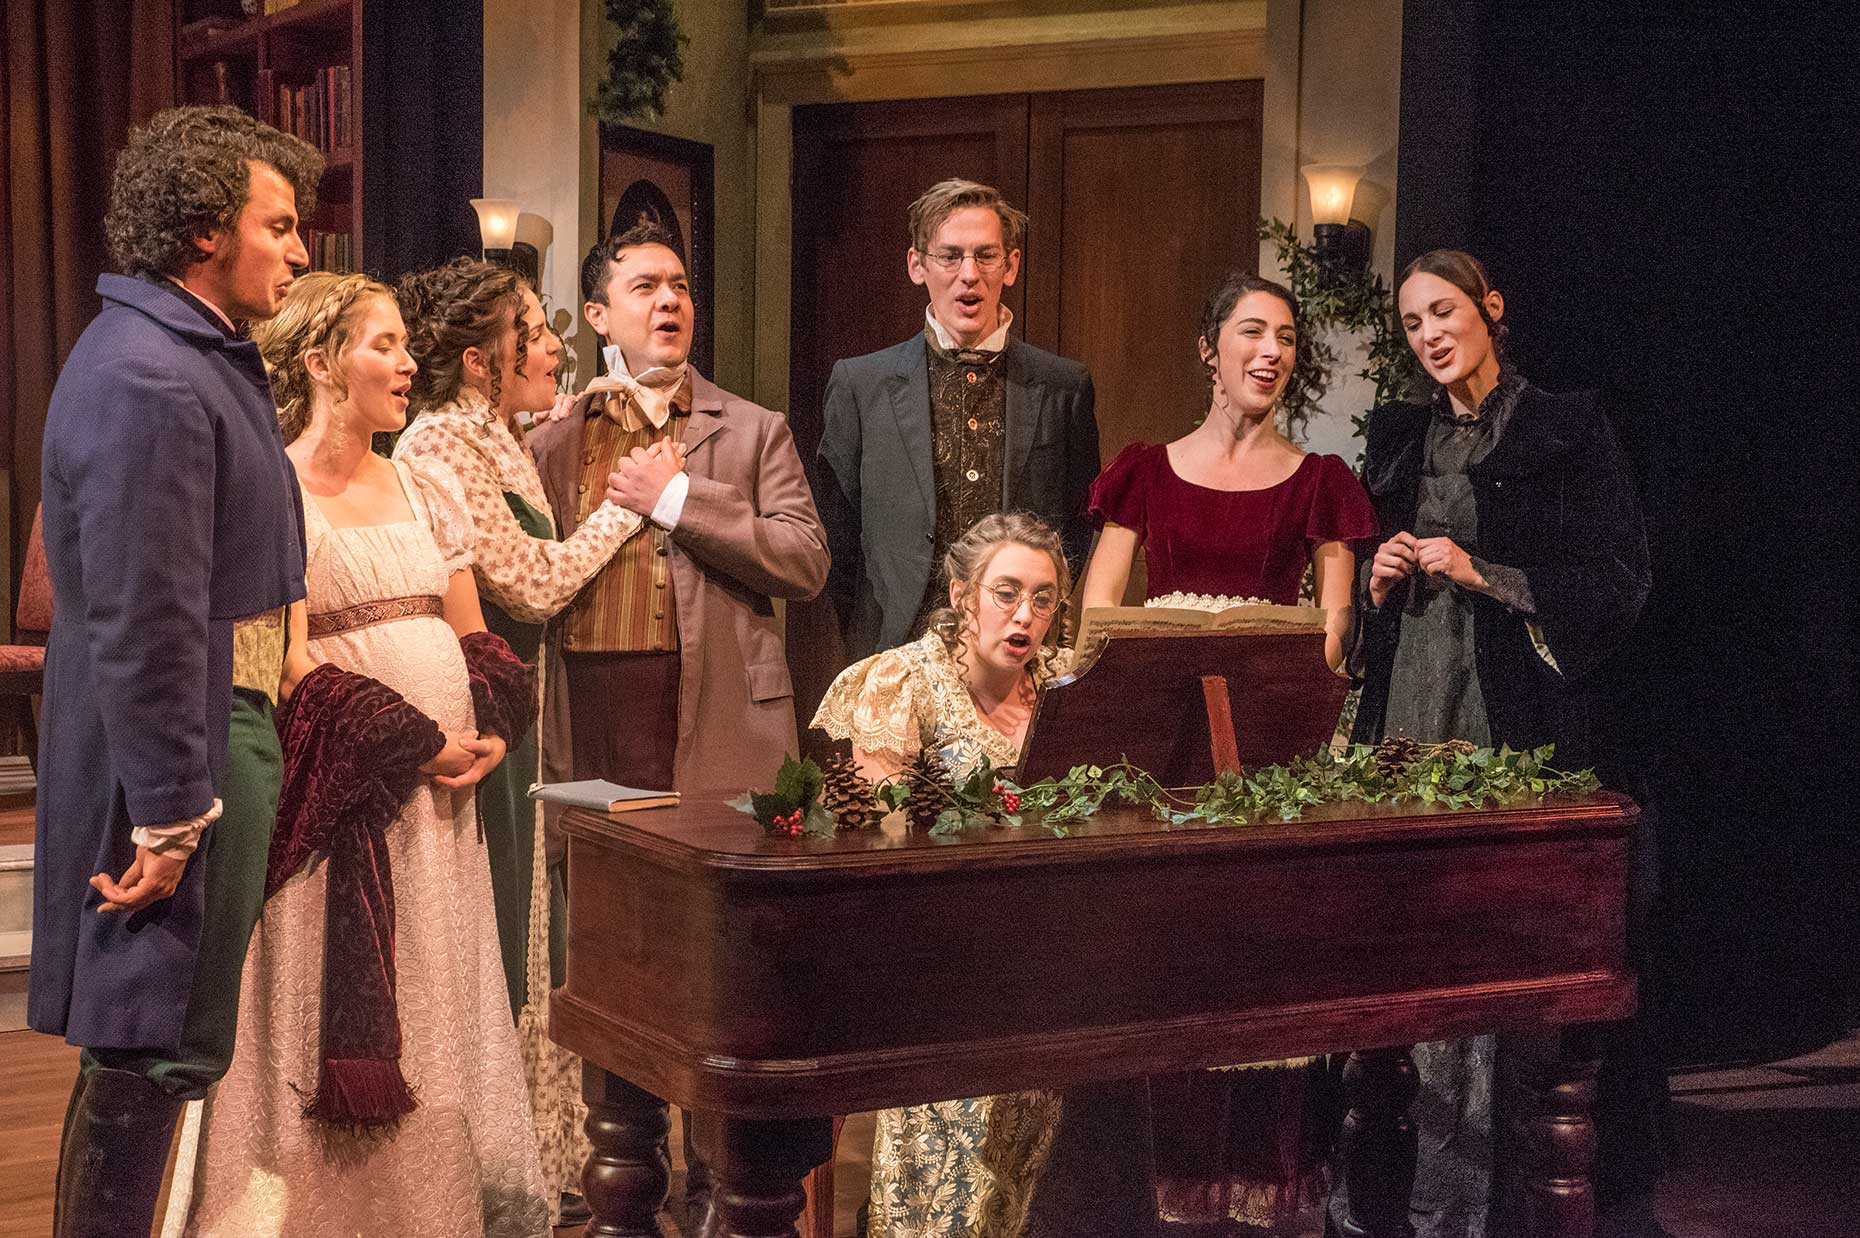 rick-barbour-director-miss-bennet-christmas-at-pemberley-boulder-ensemble-theatre-03